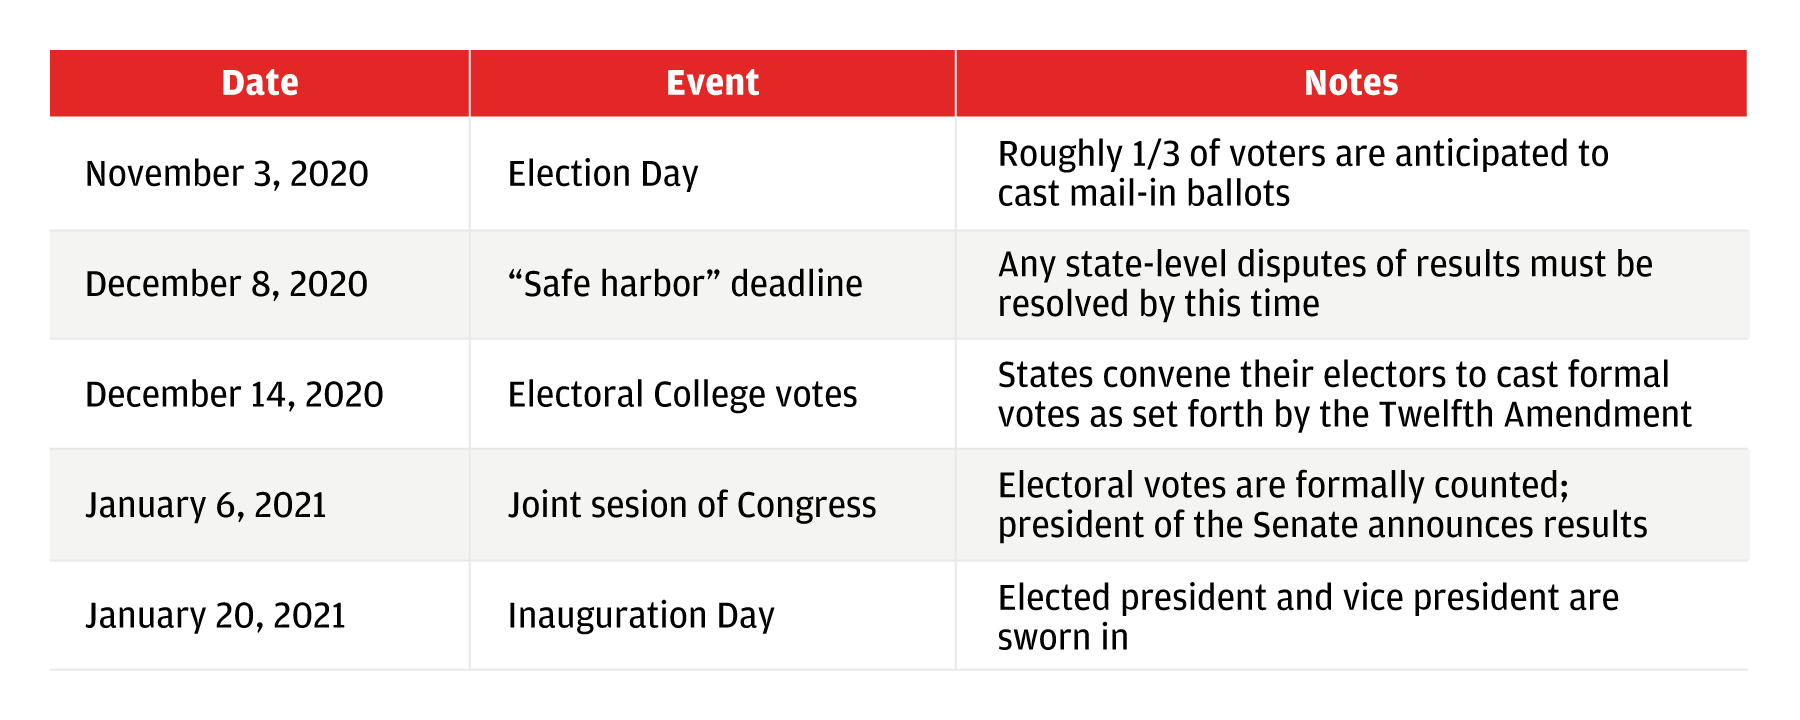 The chart shows key dates coming up in the election process and explains the event that occurs on each date and key details about what to expect.